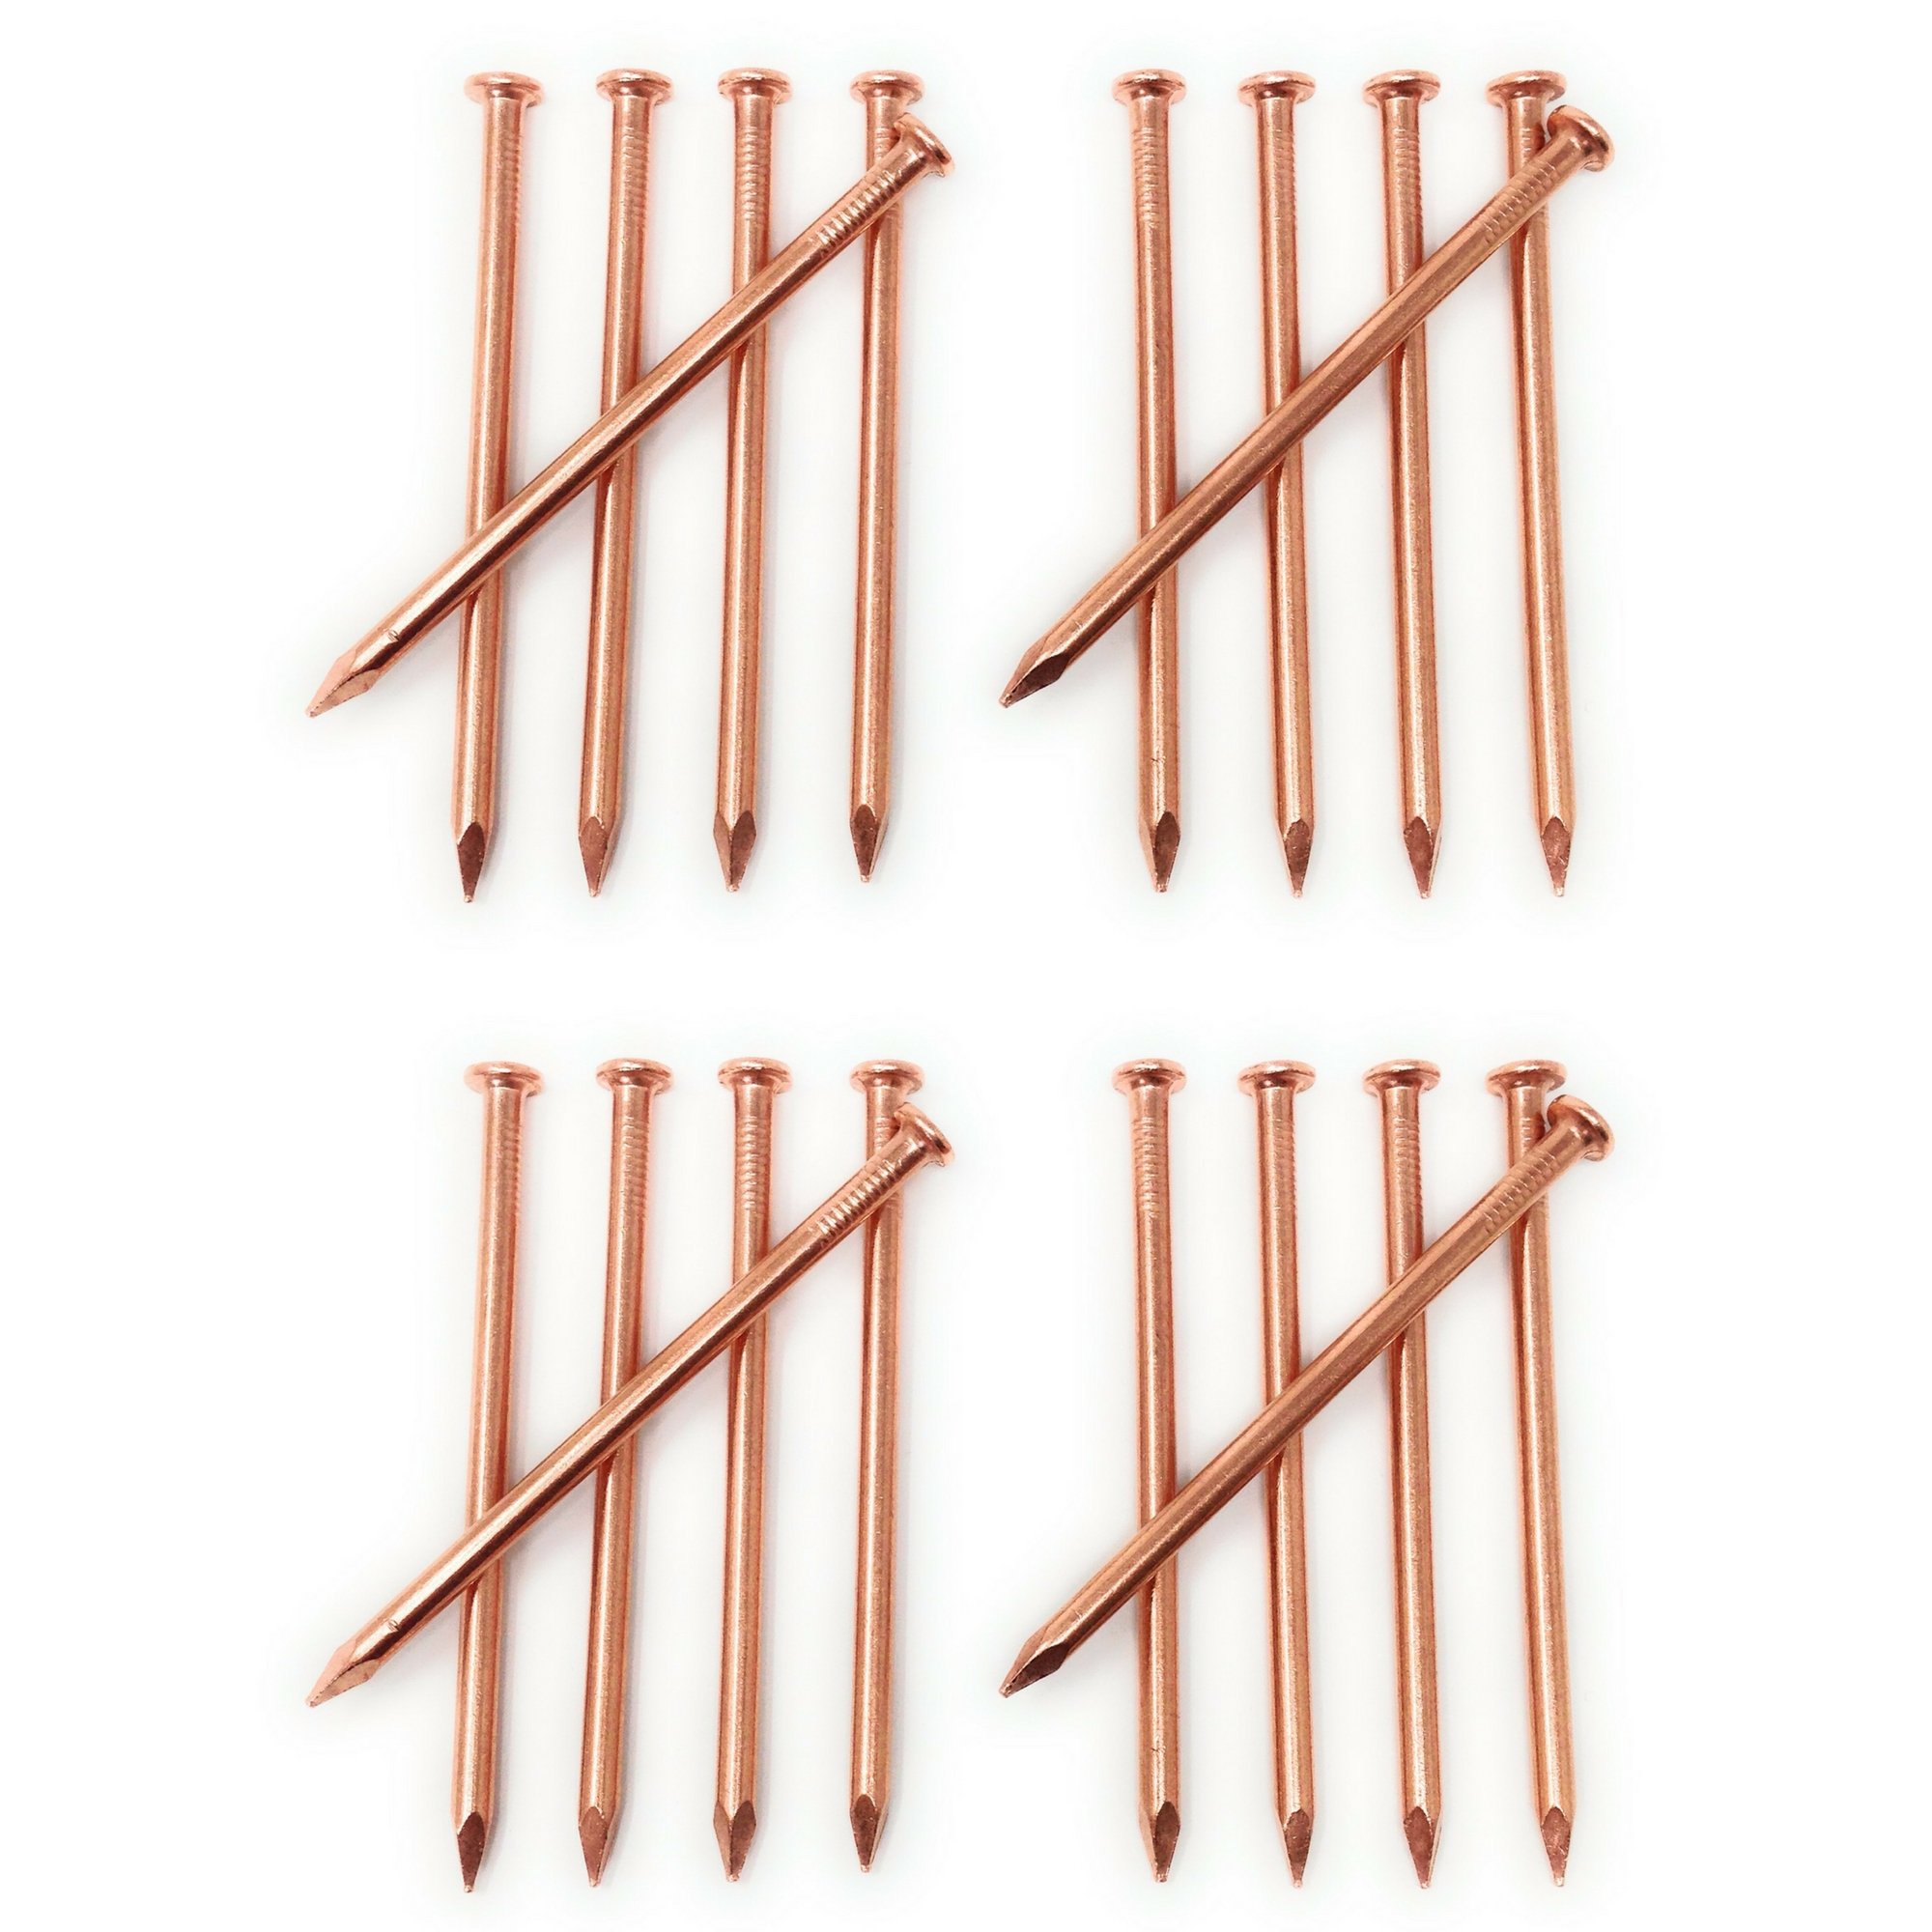 3.5 inch Copper Nails - Pack of 20 Solid Copper Nail Spikes